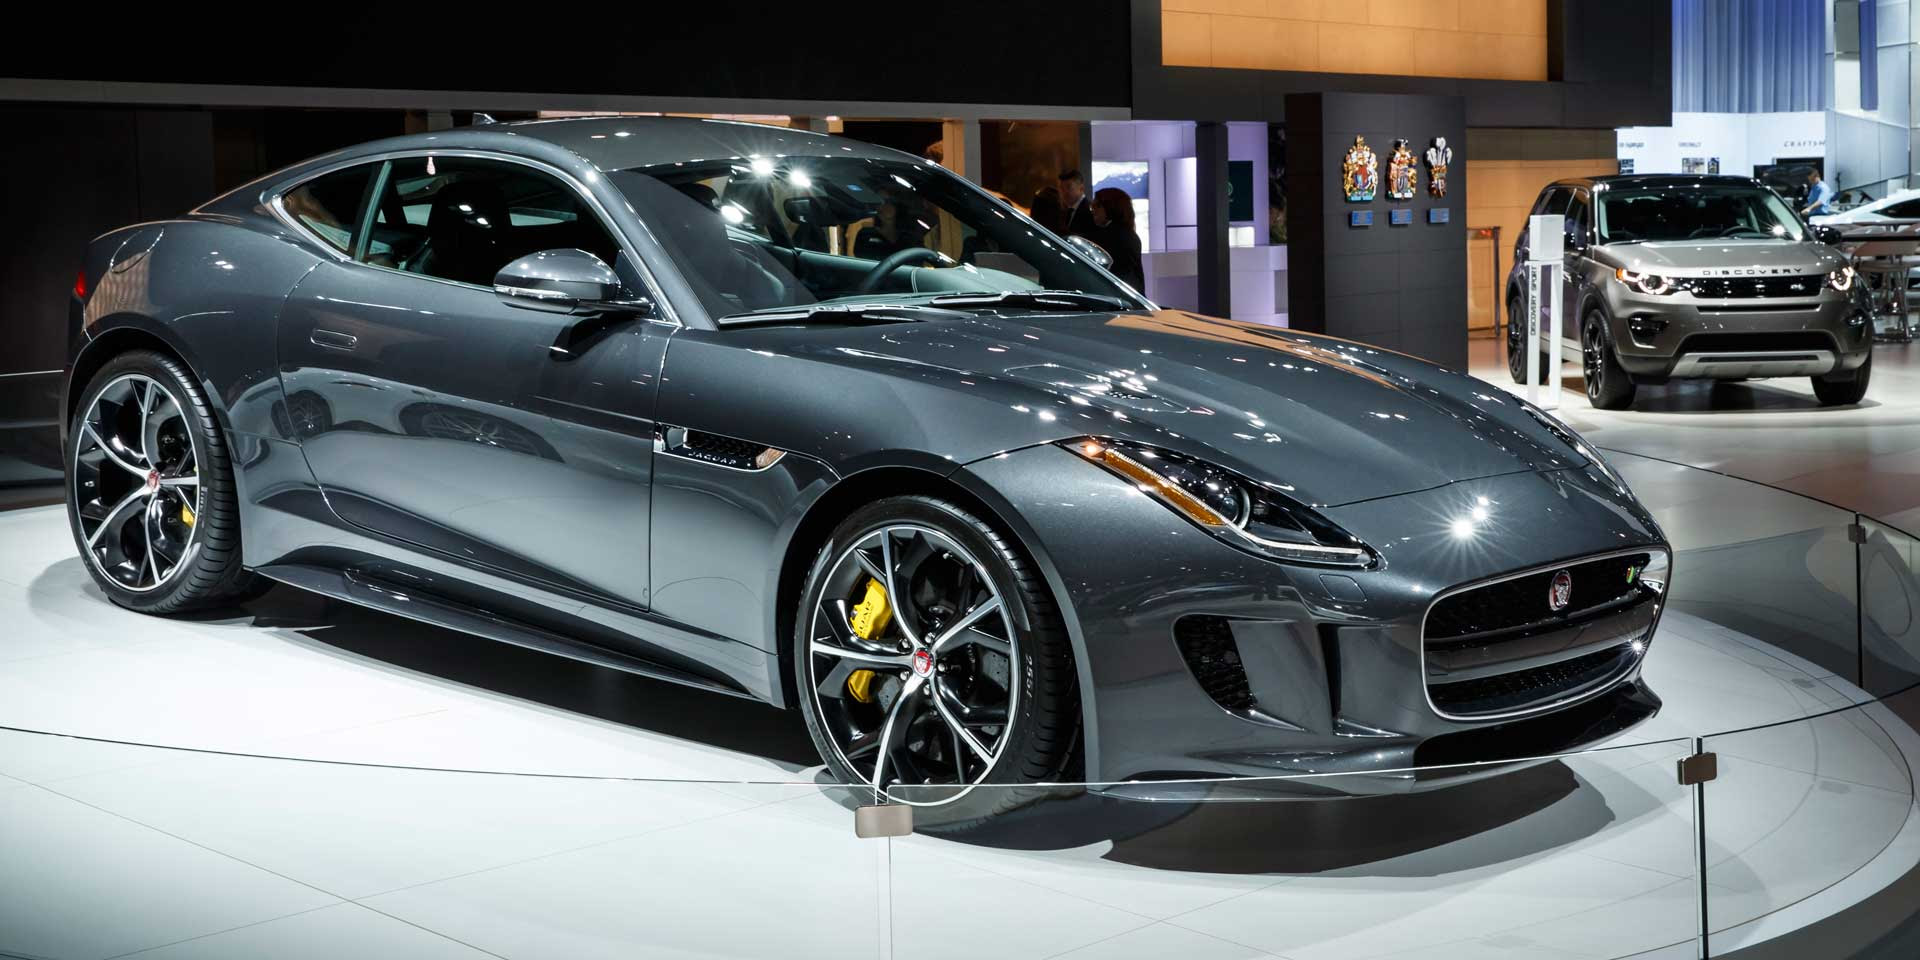 Jaguar F-Type Coupe 2017 Review, Specification, and Price